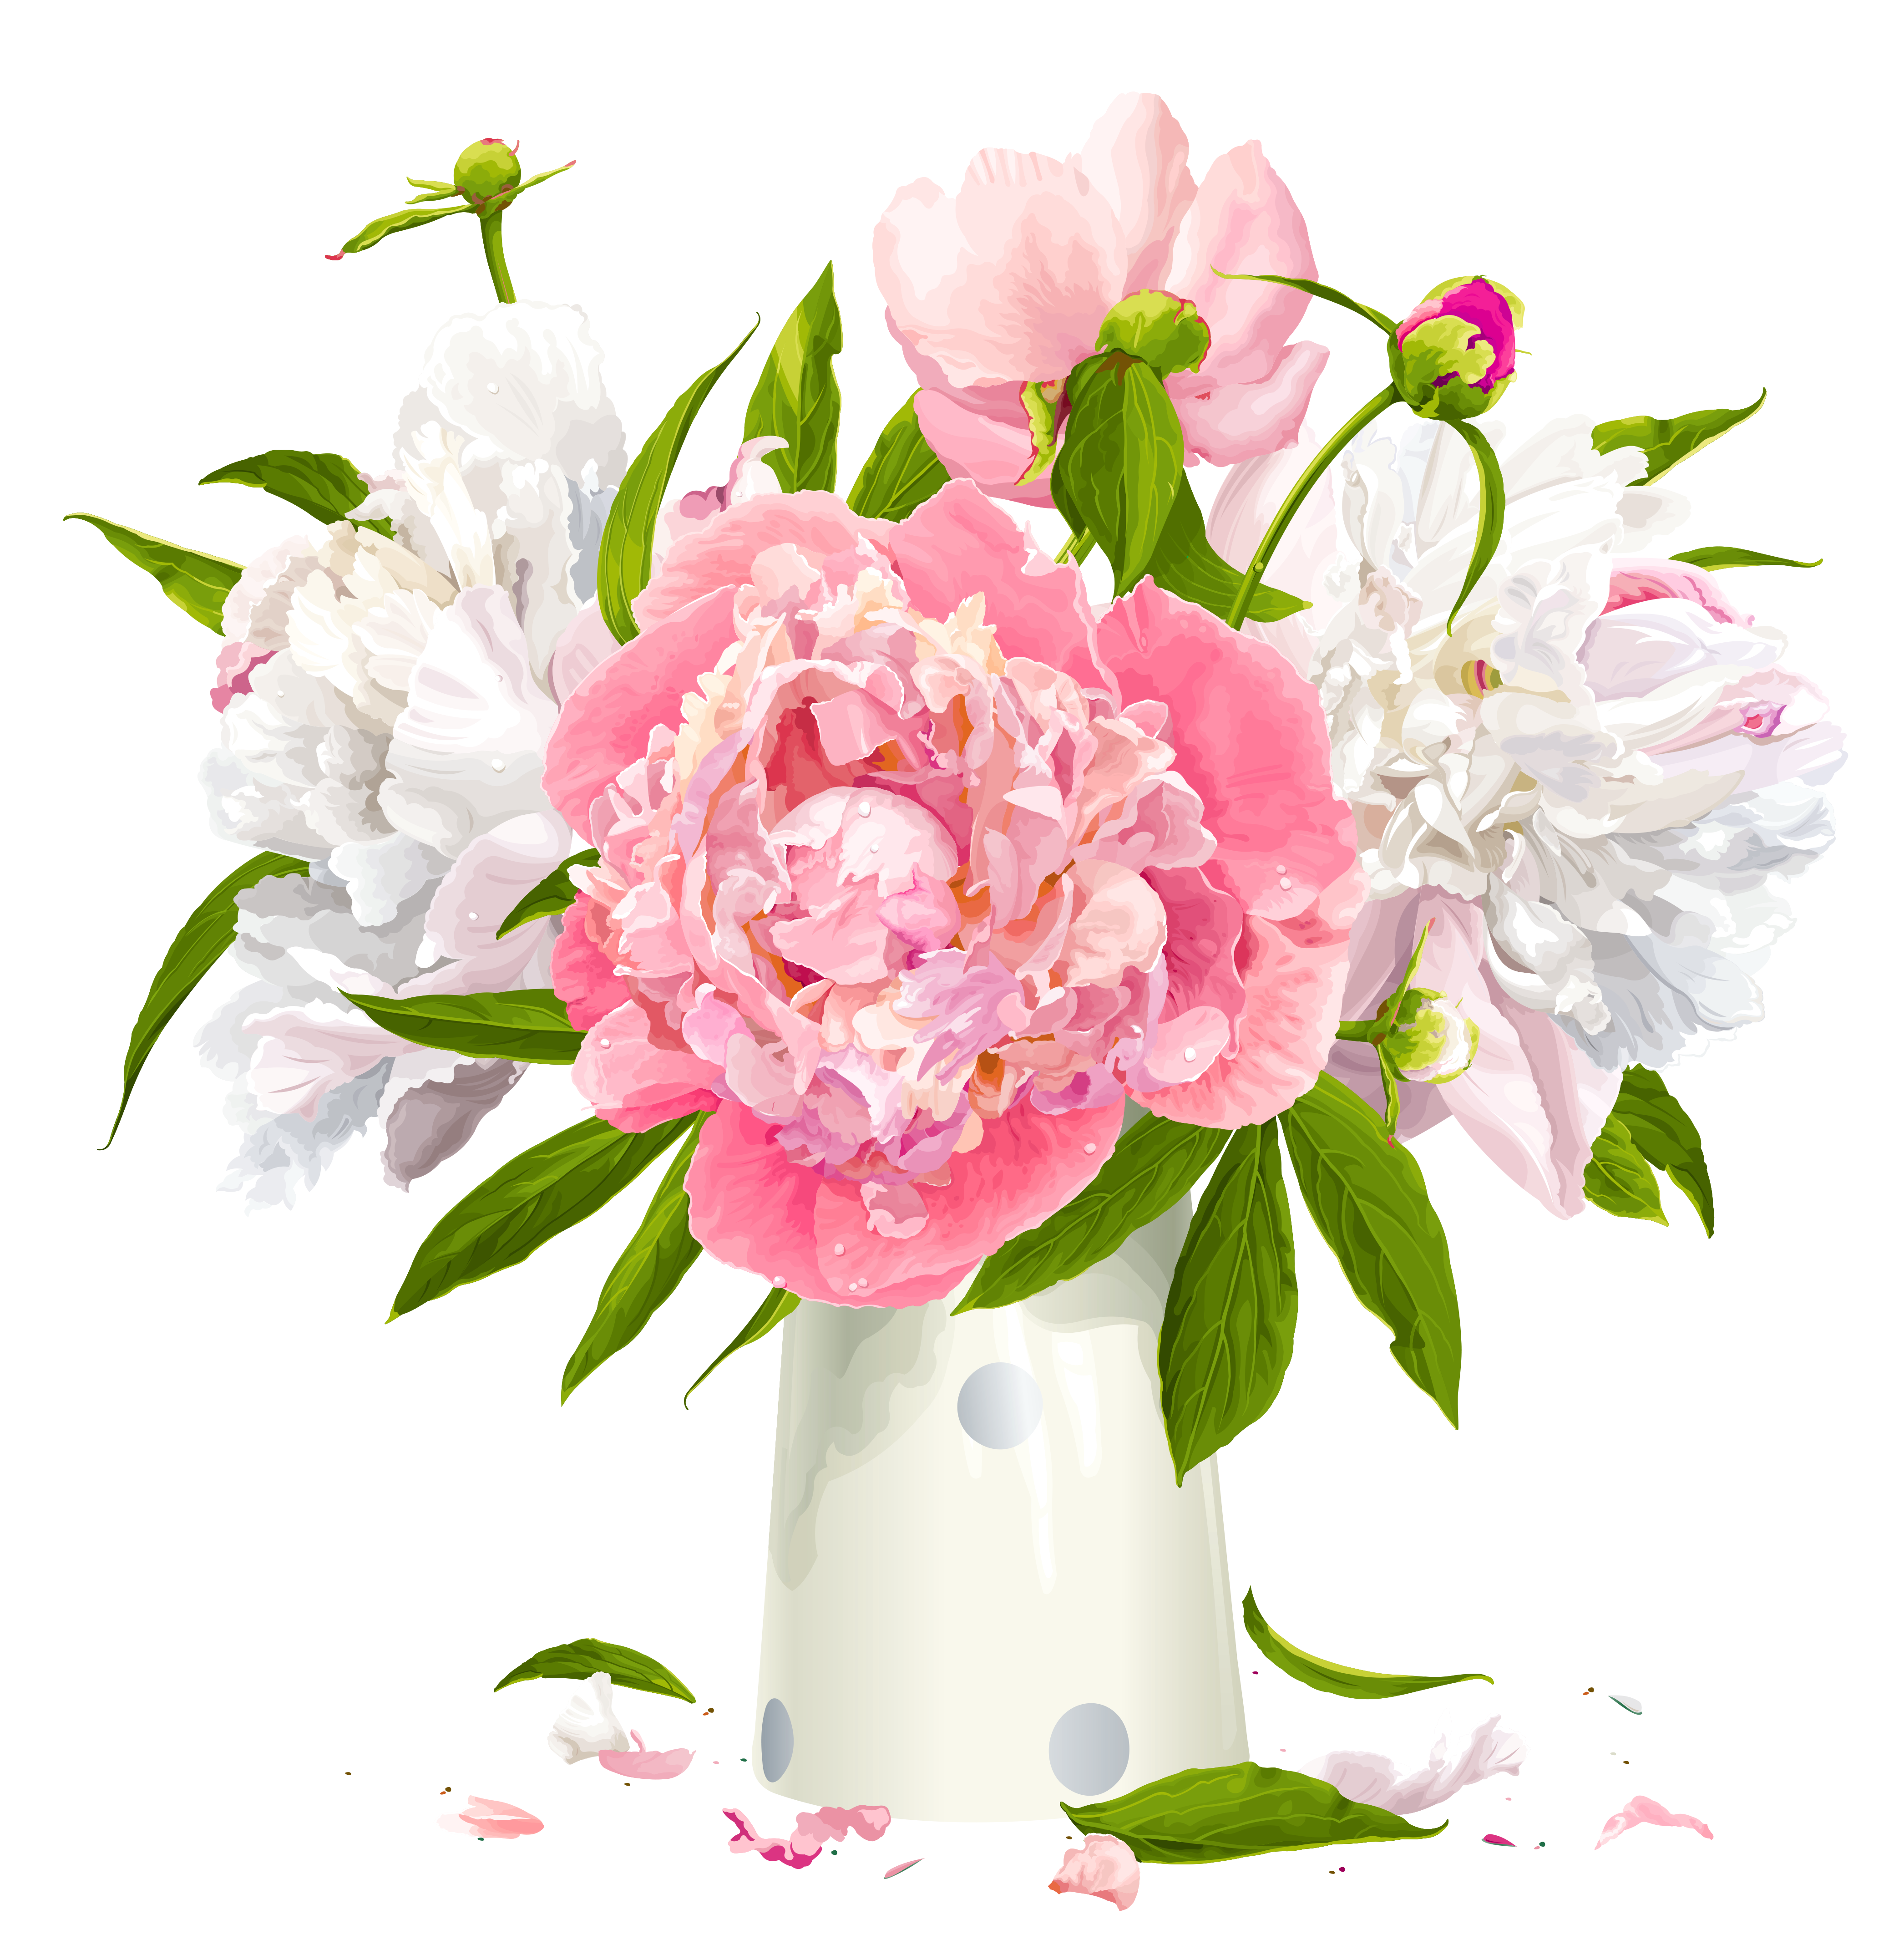 Vase clipart transparent Cliparts Peony Clipart Pink Peonies